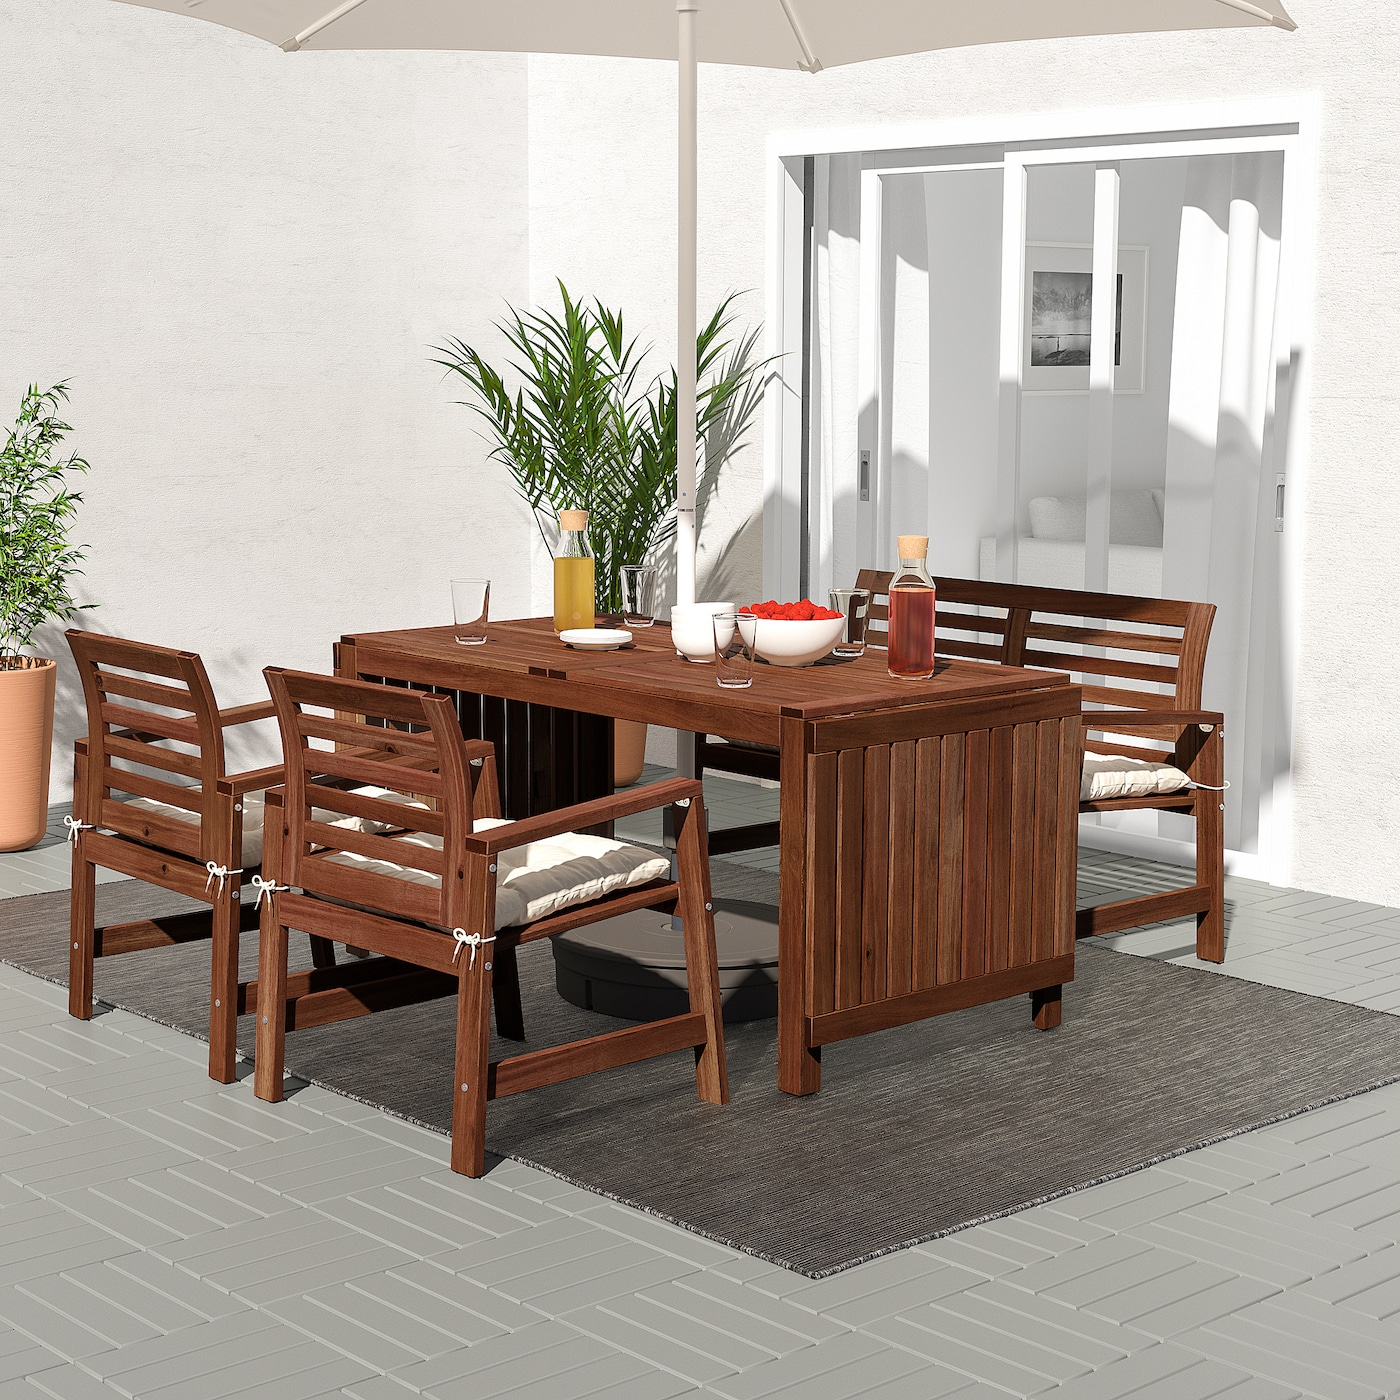 ÄPPLARÖ Table, 2 armchairs + bench, outdoor, brown stained